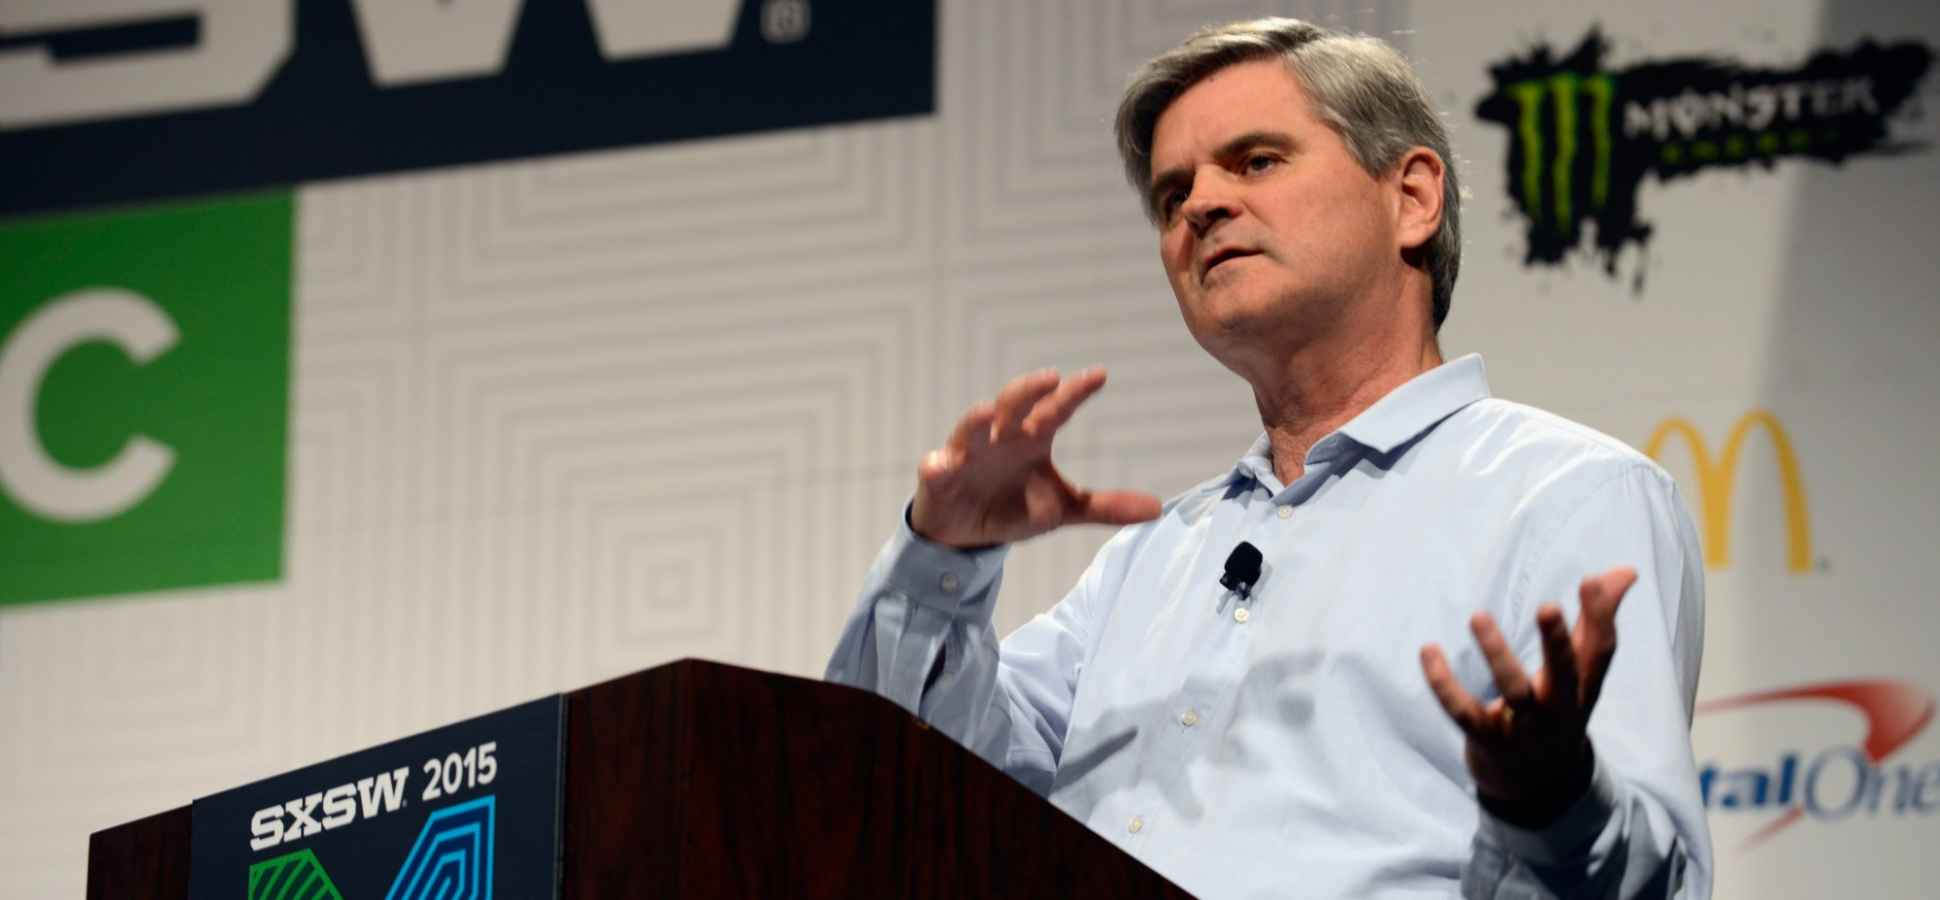 The Next Wave Will Be Built on This One Thing, According to Steve Case